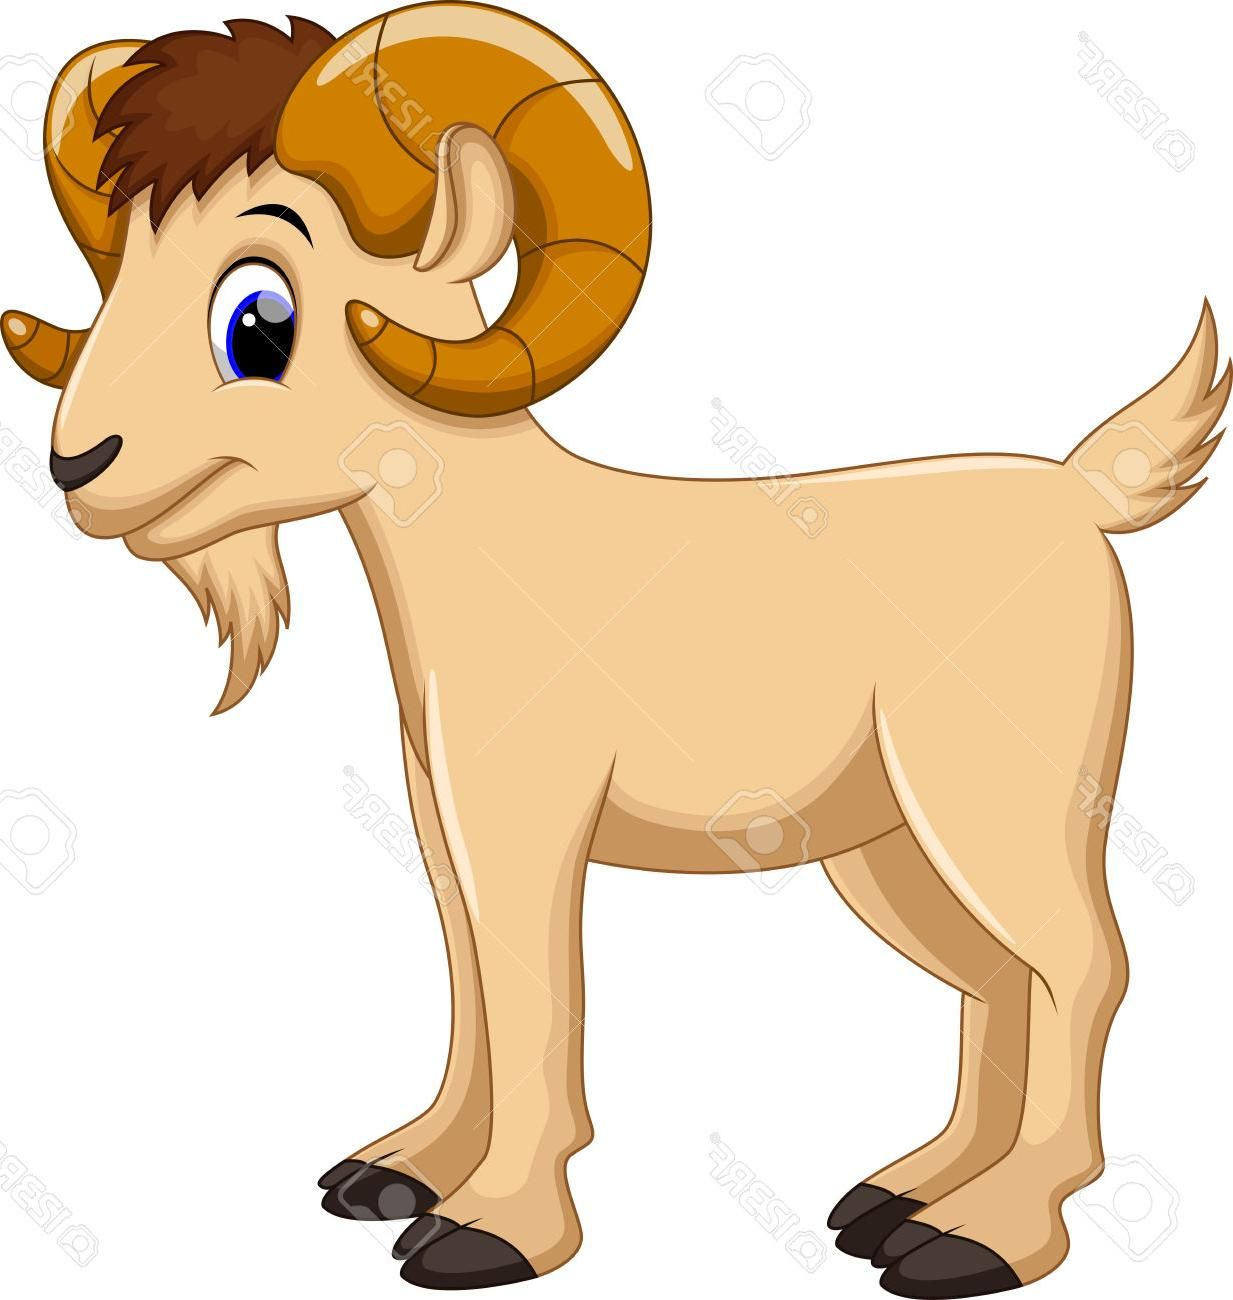 Goat Clipart (With images) | Clip art